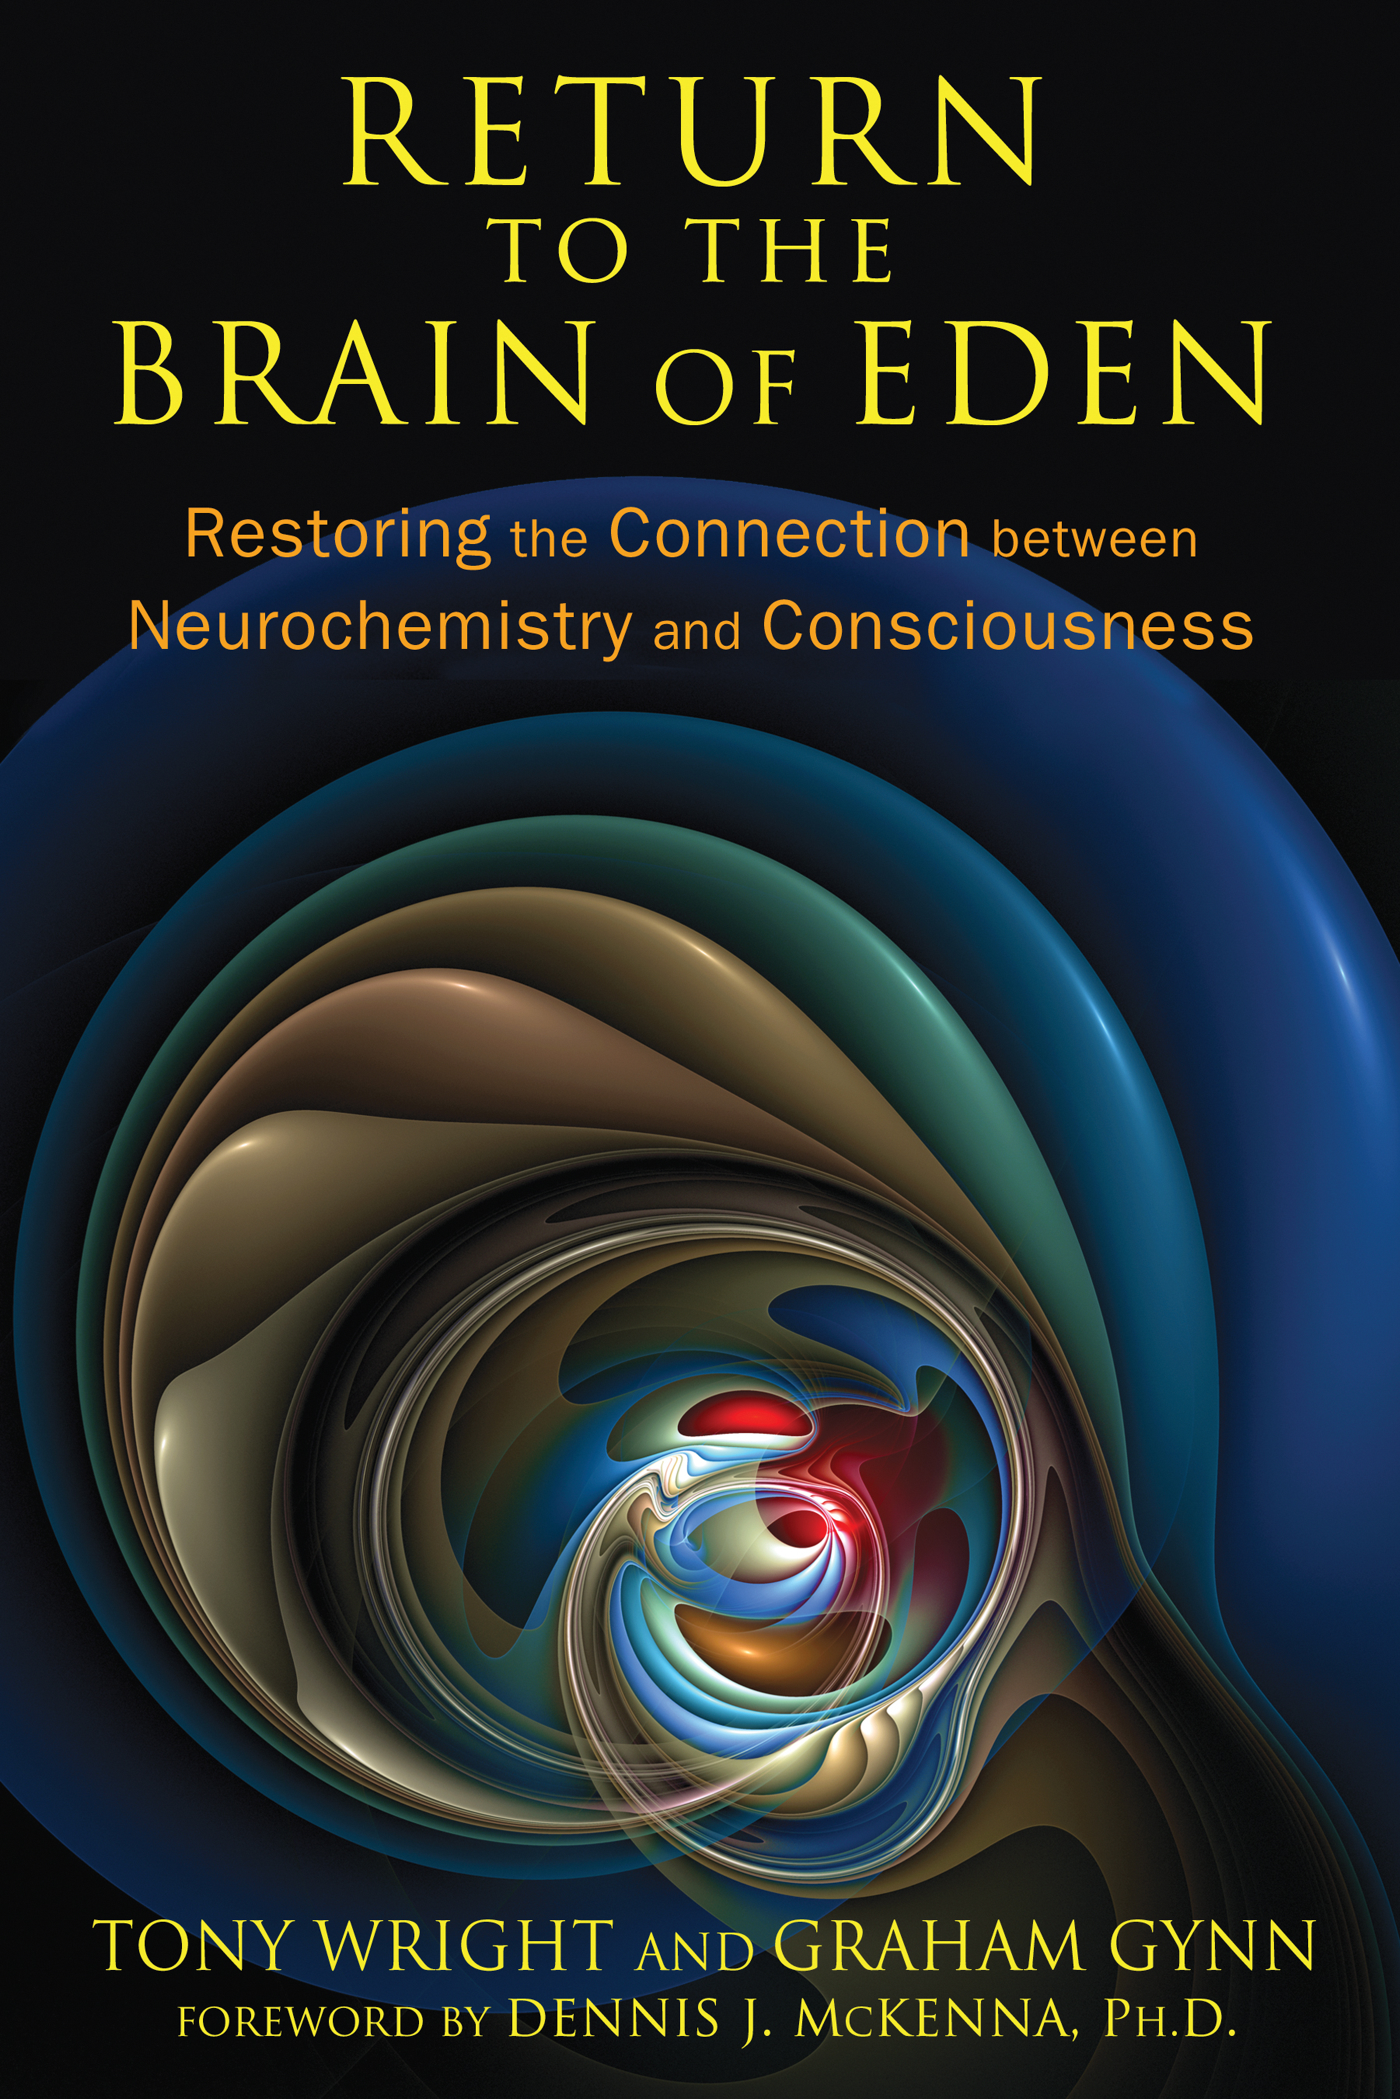 Return-to-the-brain-of-eden-9781620552513_hr